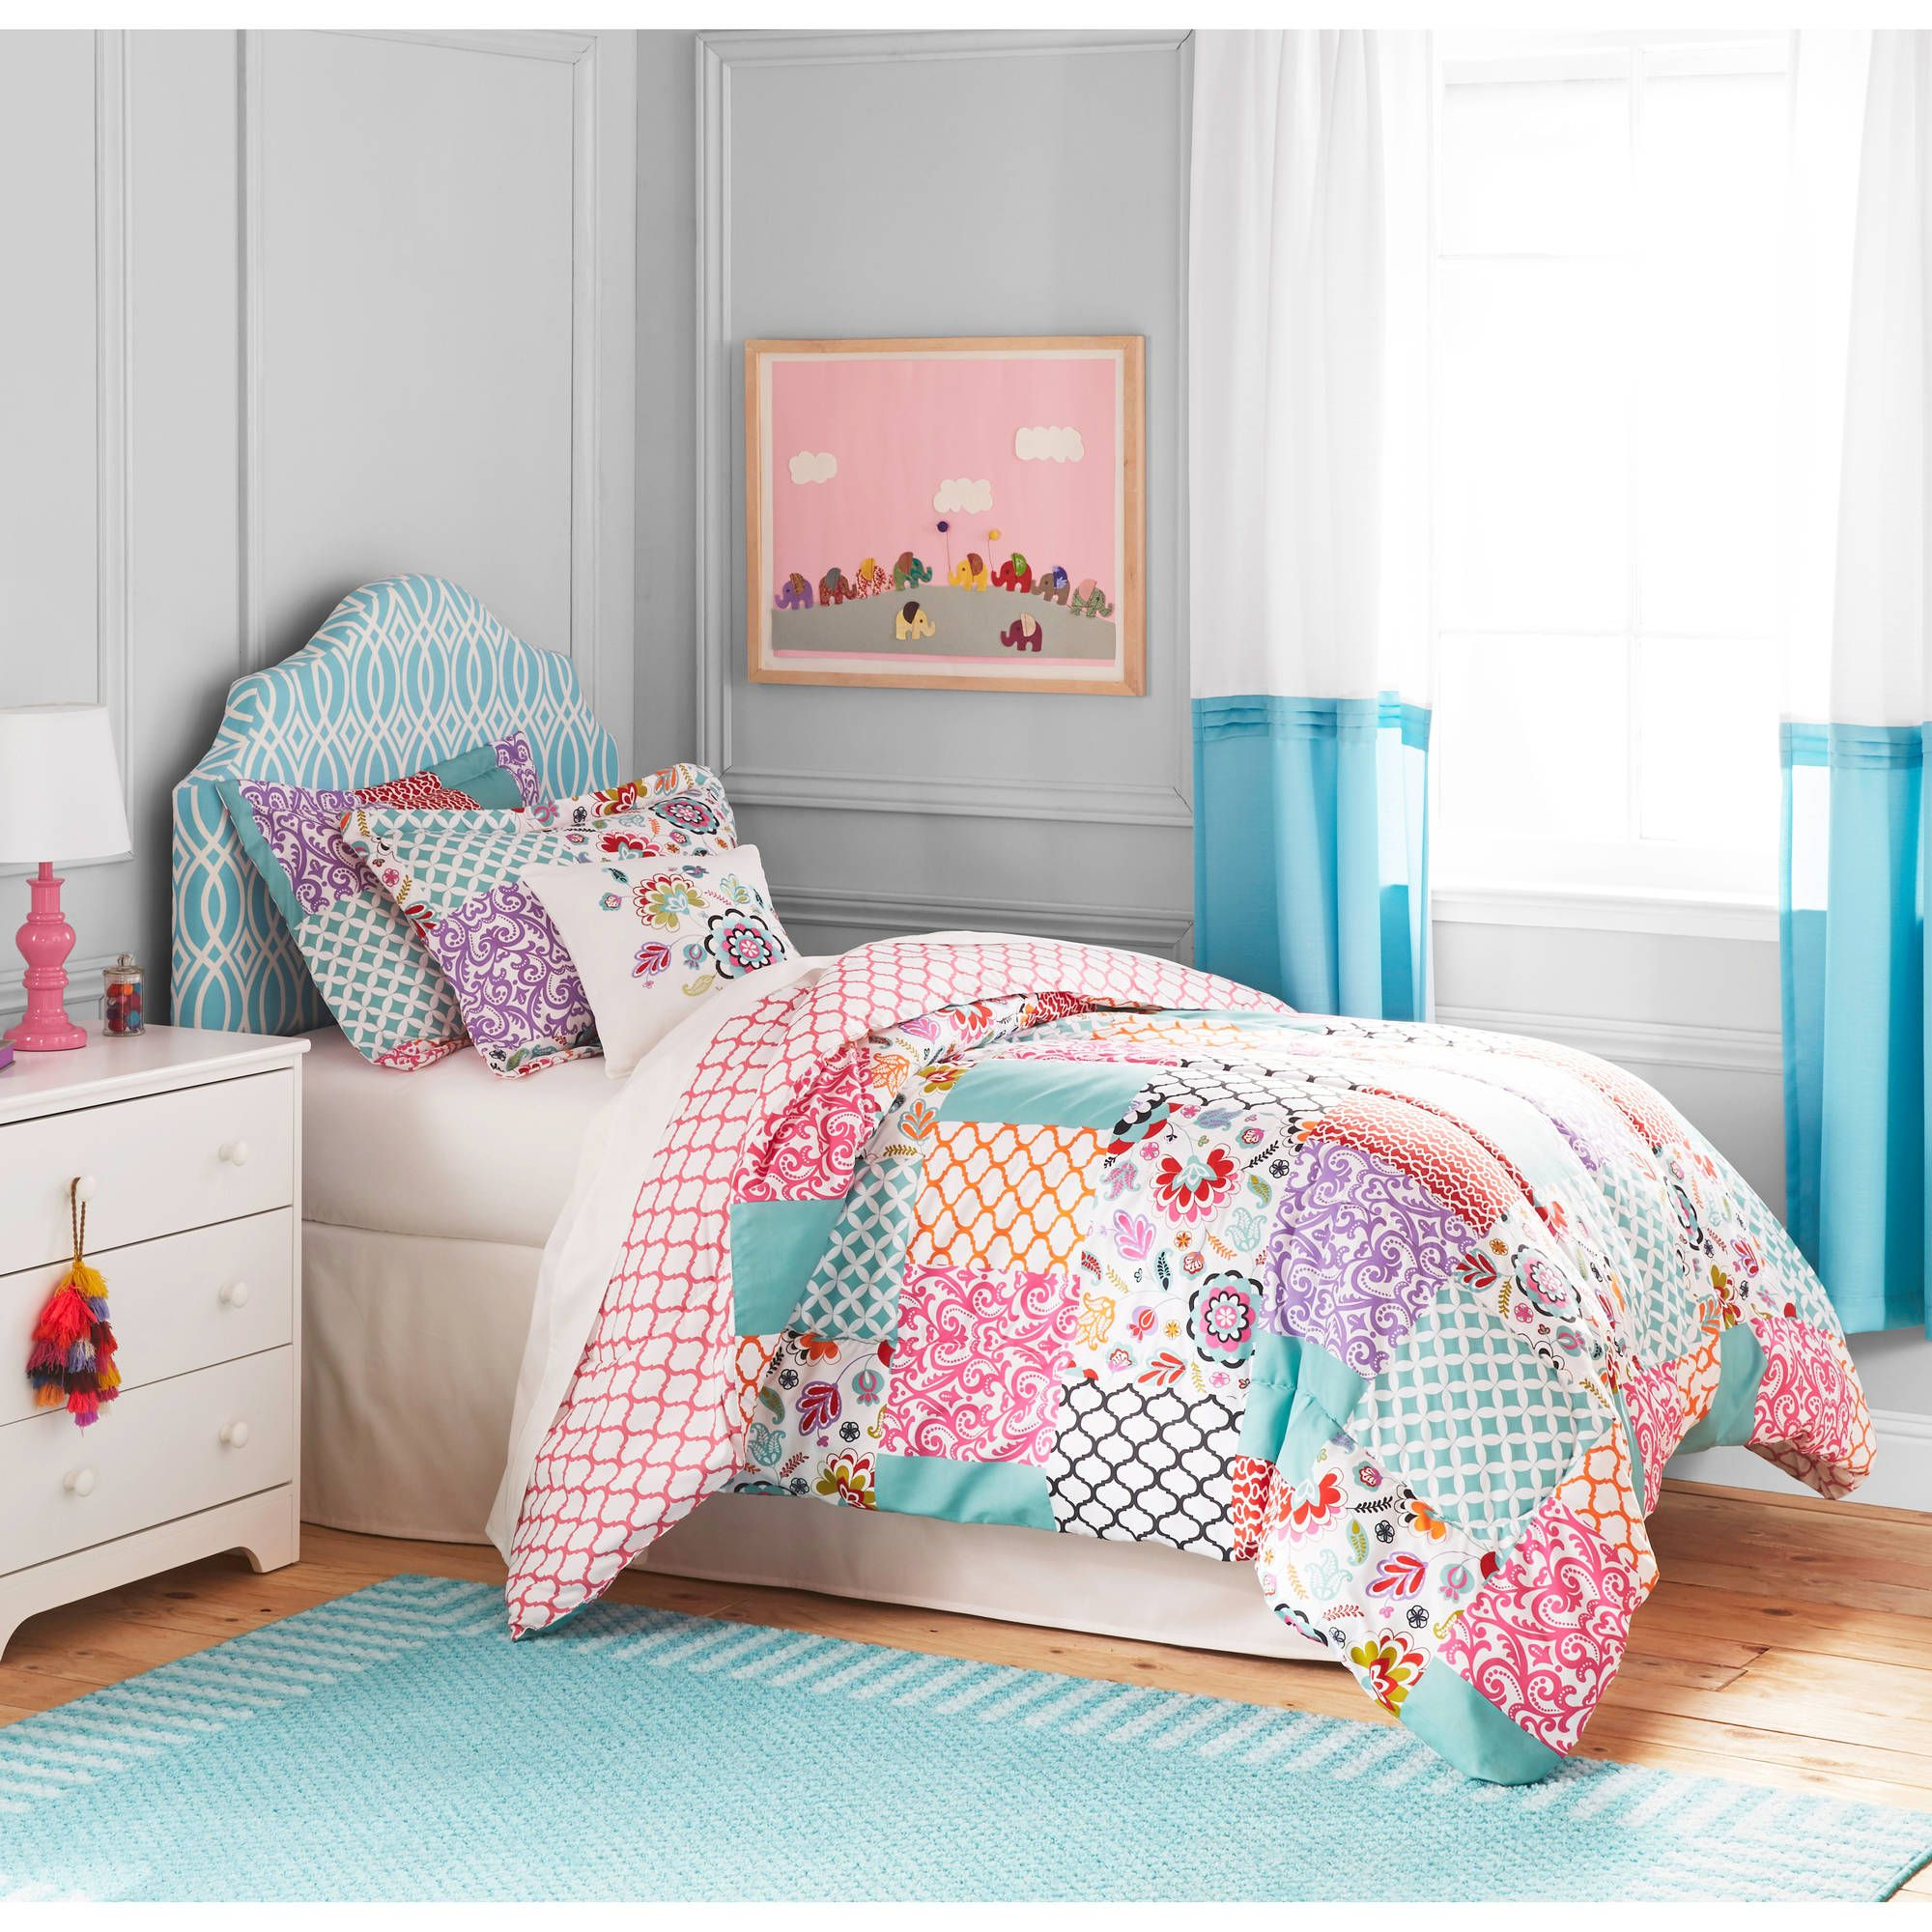 Better Homes and Gardens Kids BOHO Patchwork Bedding Comforter Set ... : quilt comforter sets queen - Adamdwight.com